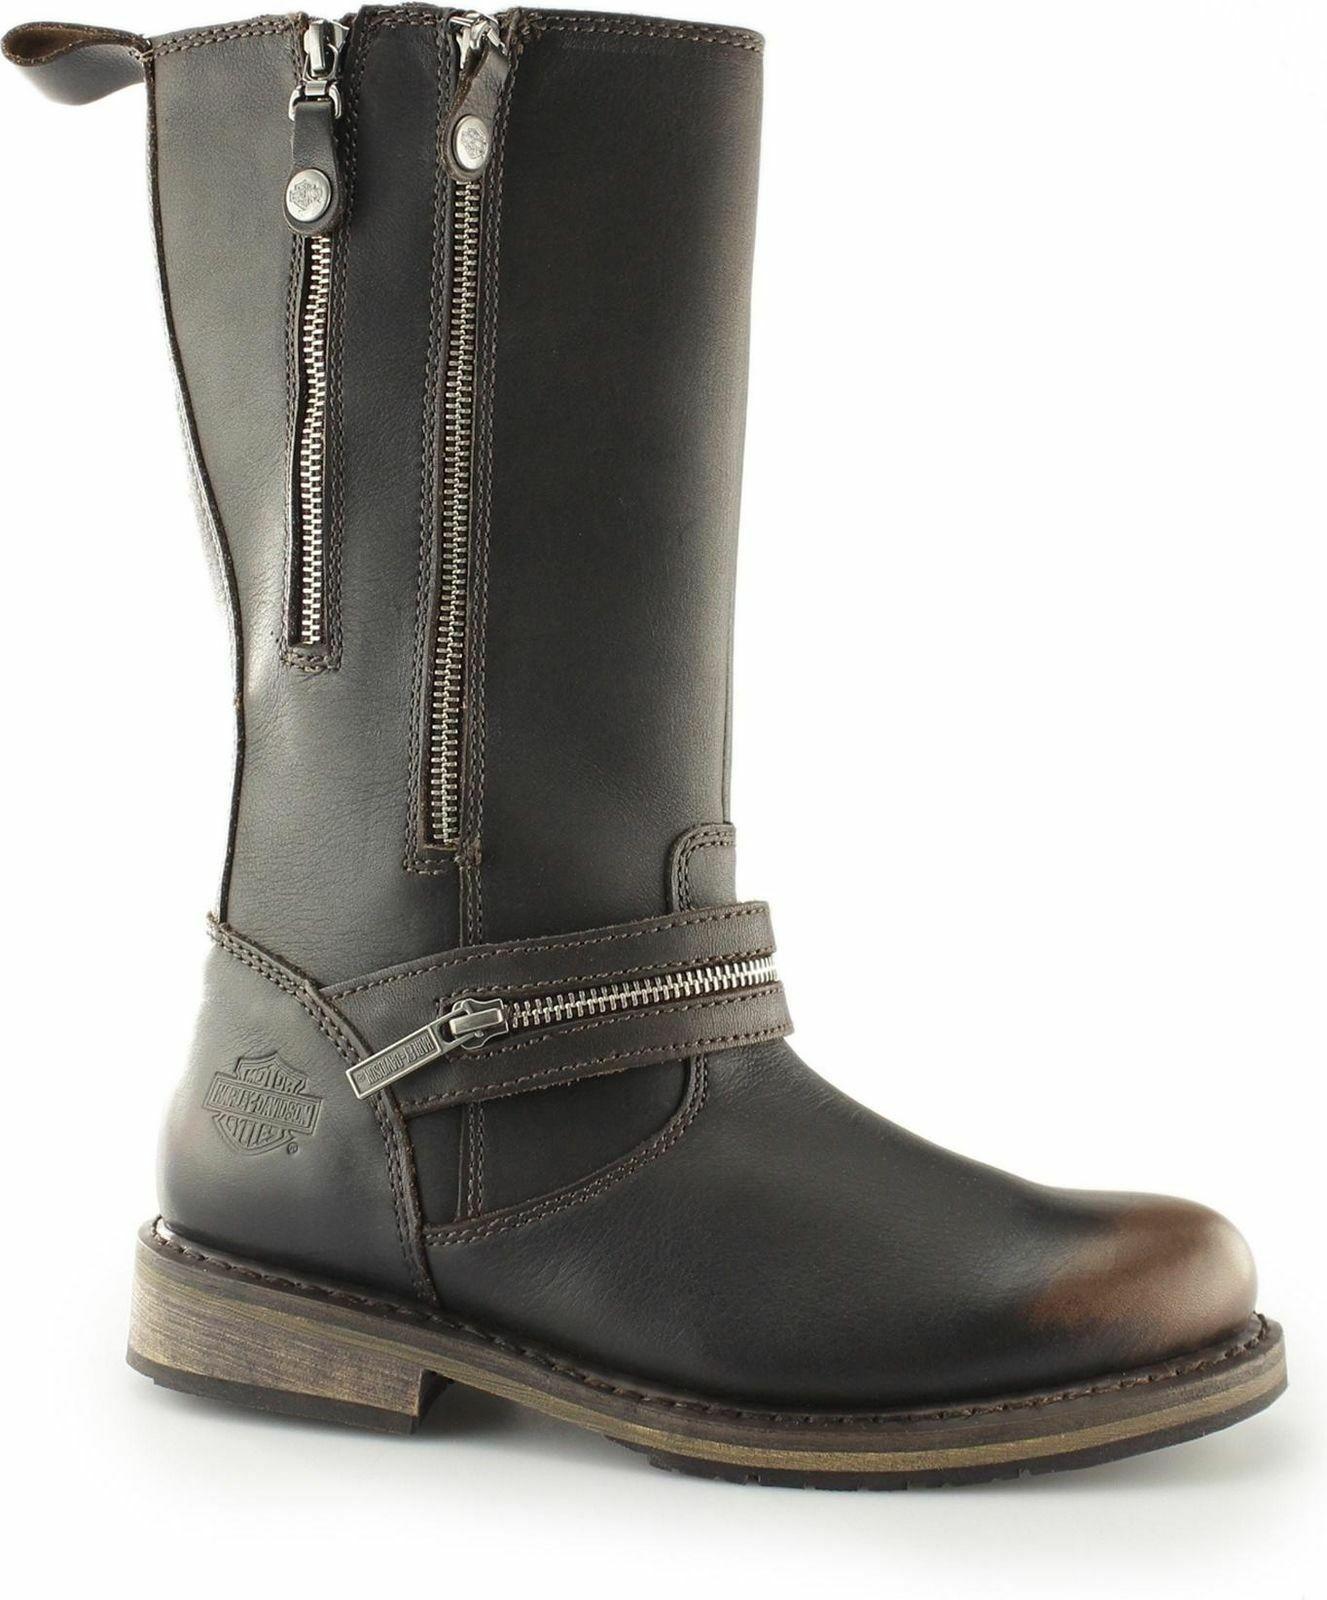 LADIES  BROWN BIKER HARLEY DAVIDSON BIKER BROWN BOOT SACKETT 77c58d